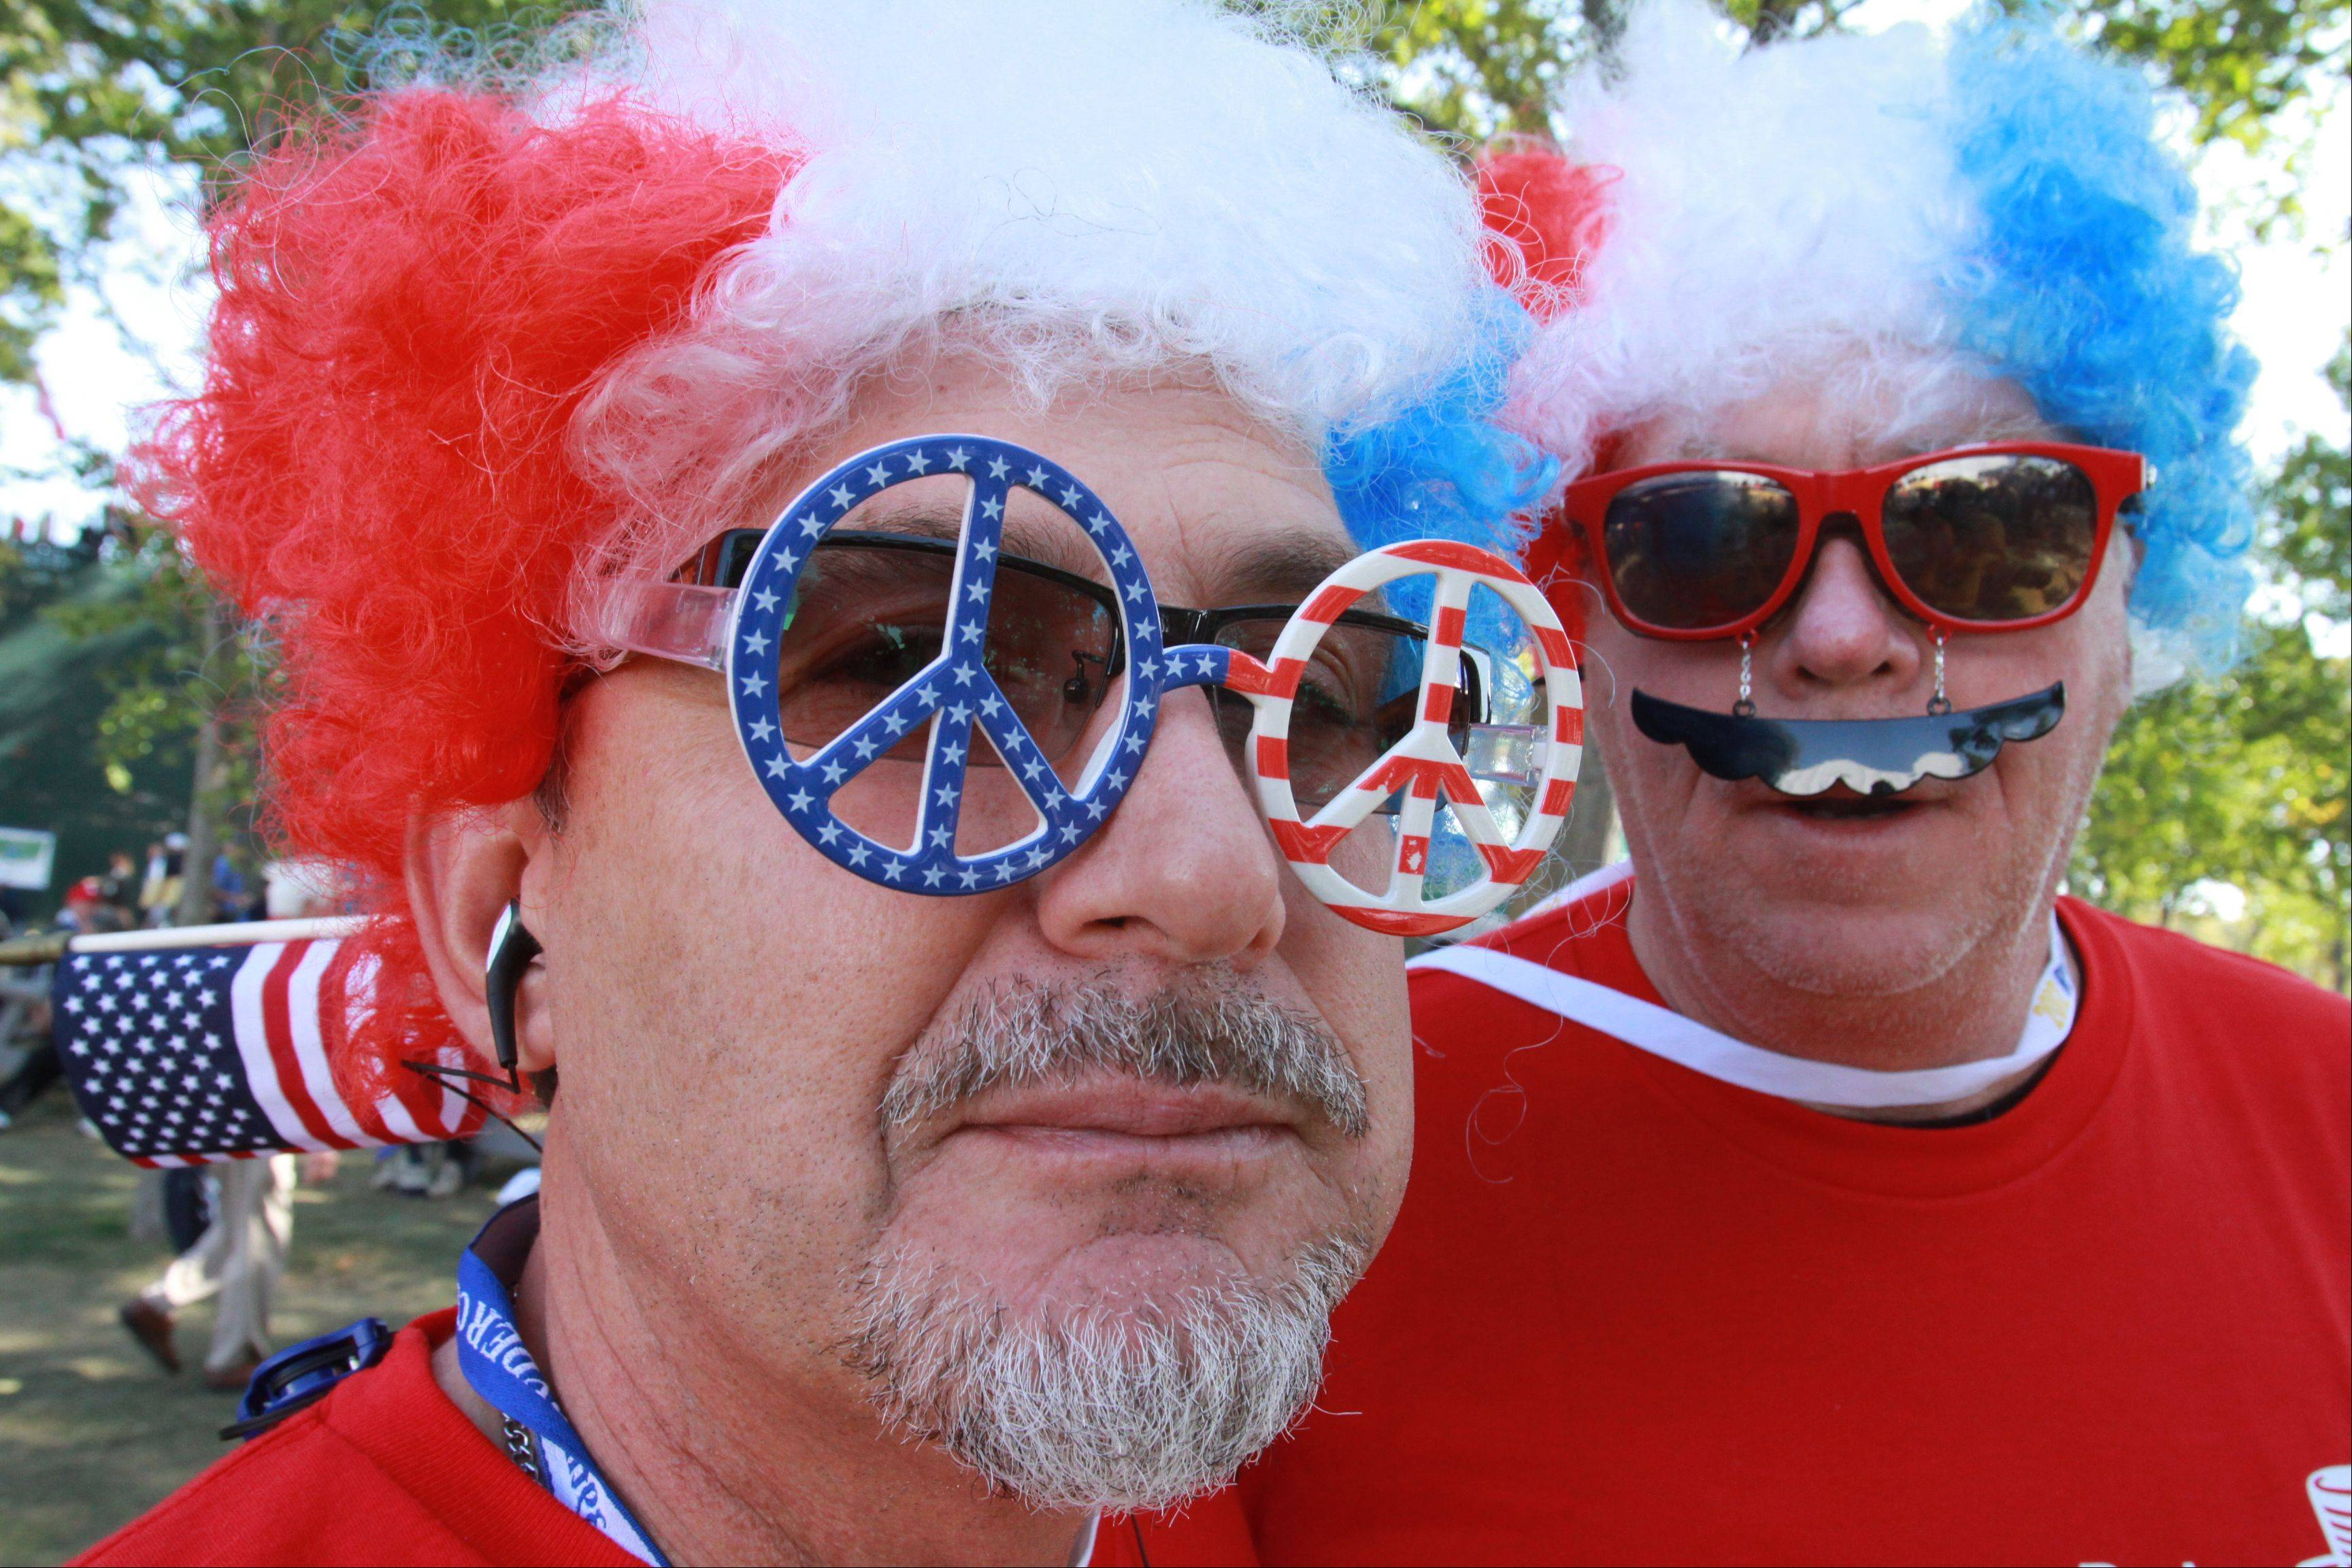 Greg Short, formerly of Peoria and now living in California, along with his friend David Jones of California, show their US spirit Saturday morning during day 2 of the 2012 Ryder Cup at Medinah Country Club.